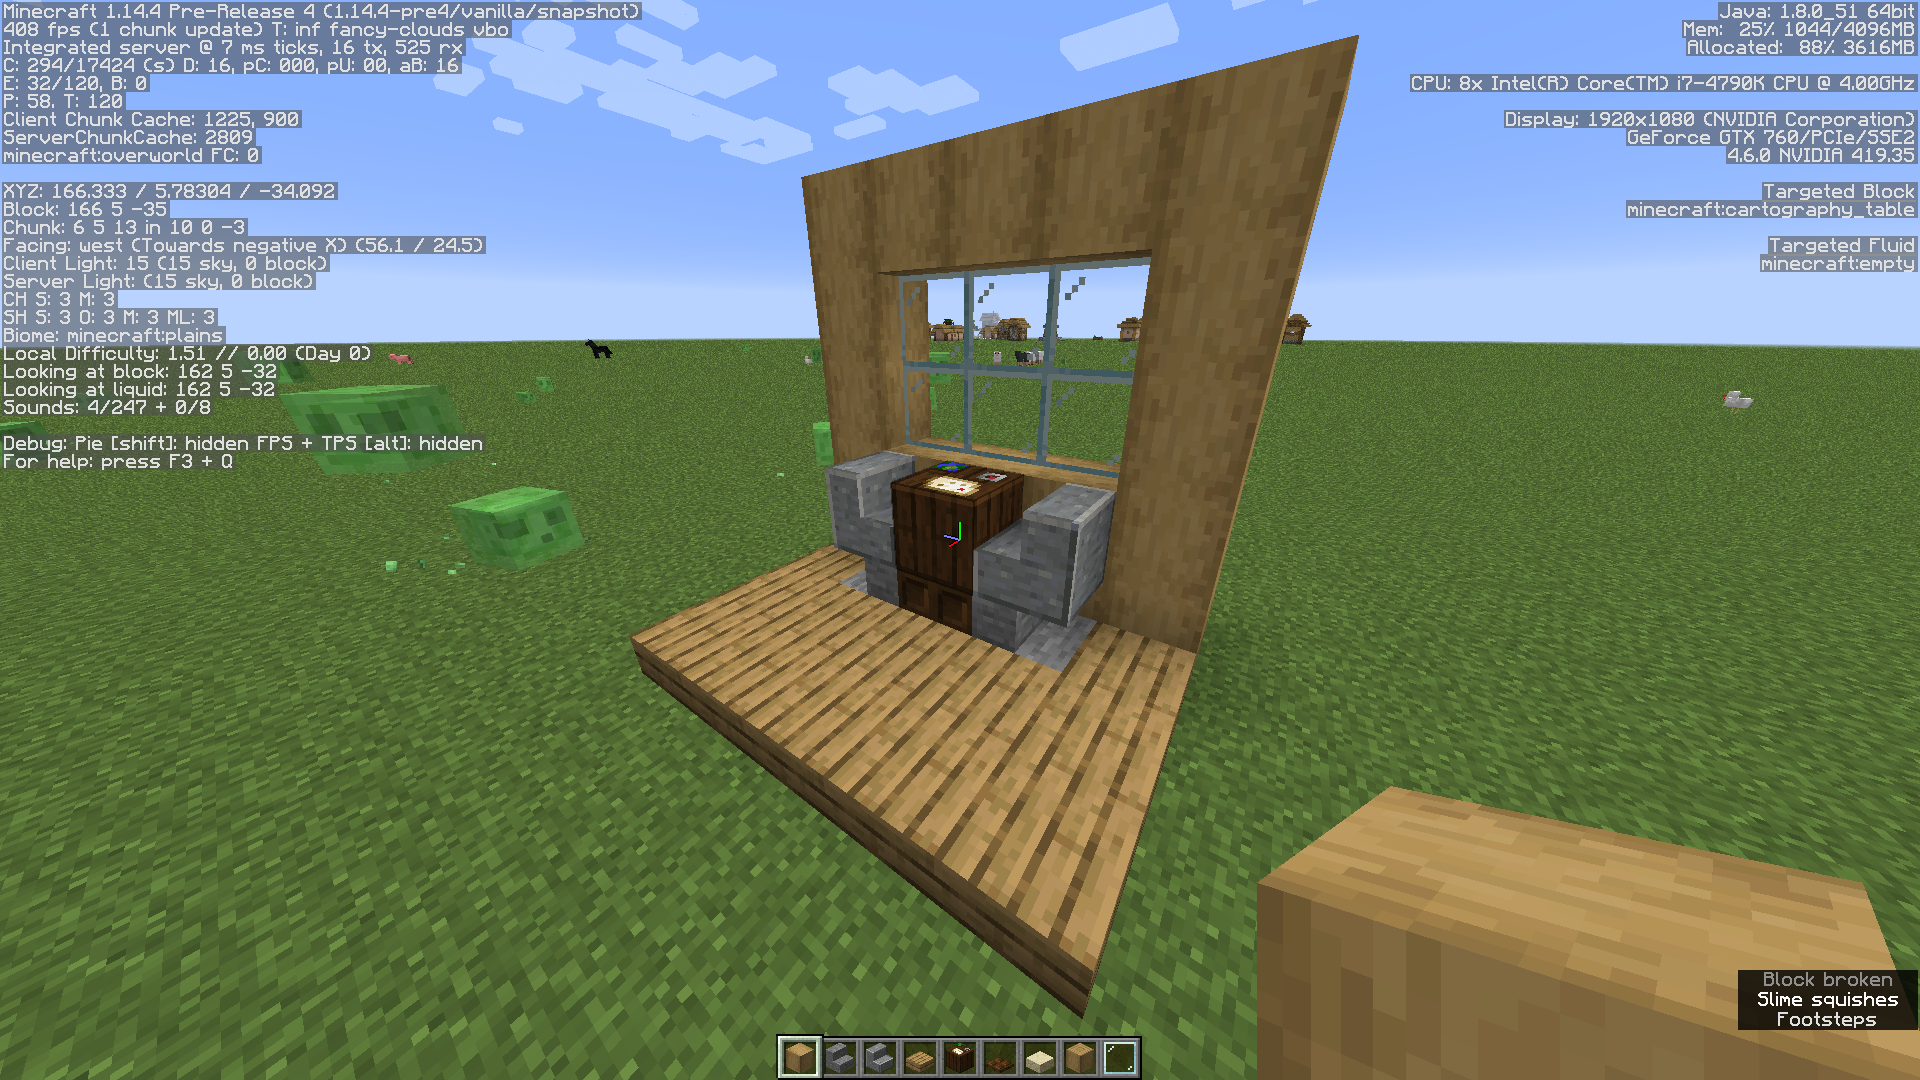 MC-9] Crafting table, cartography table, fletching table, and